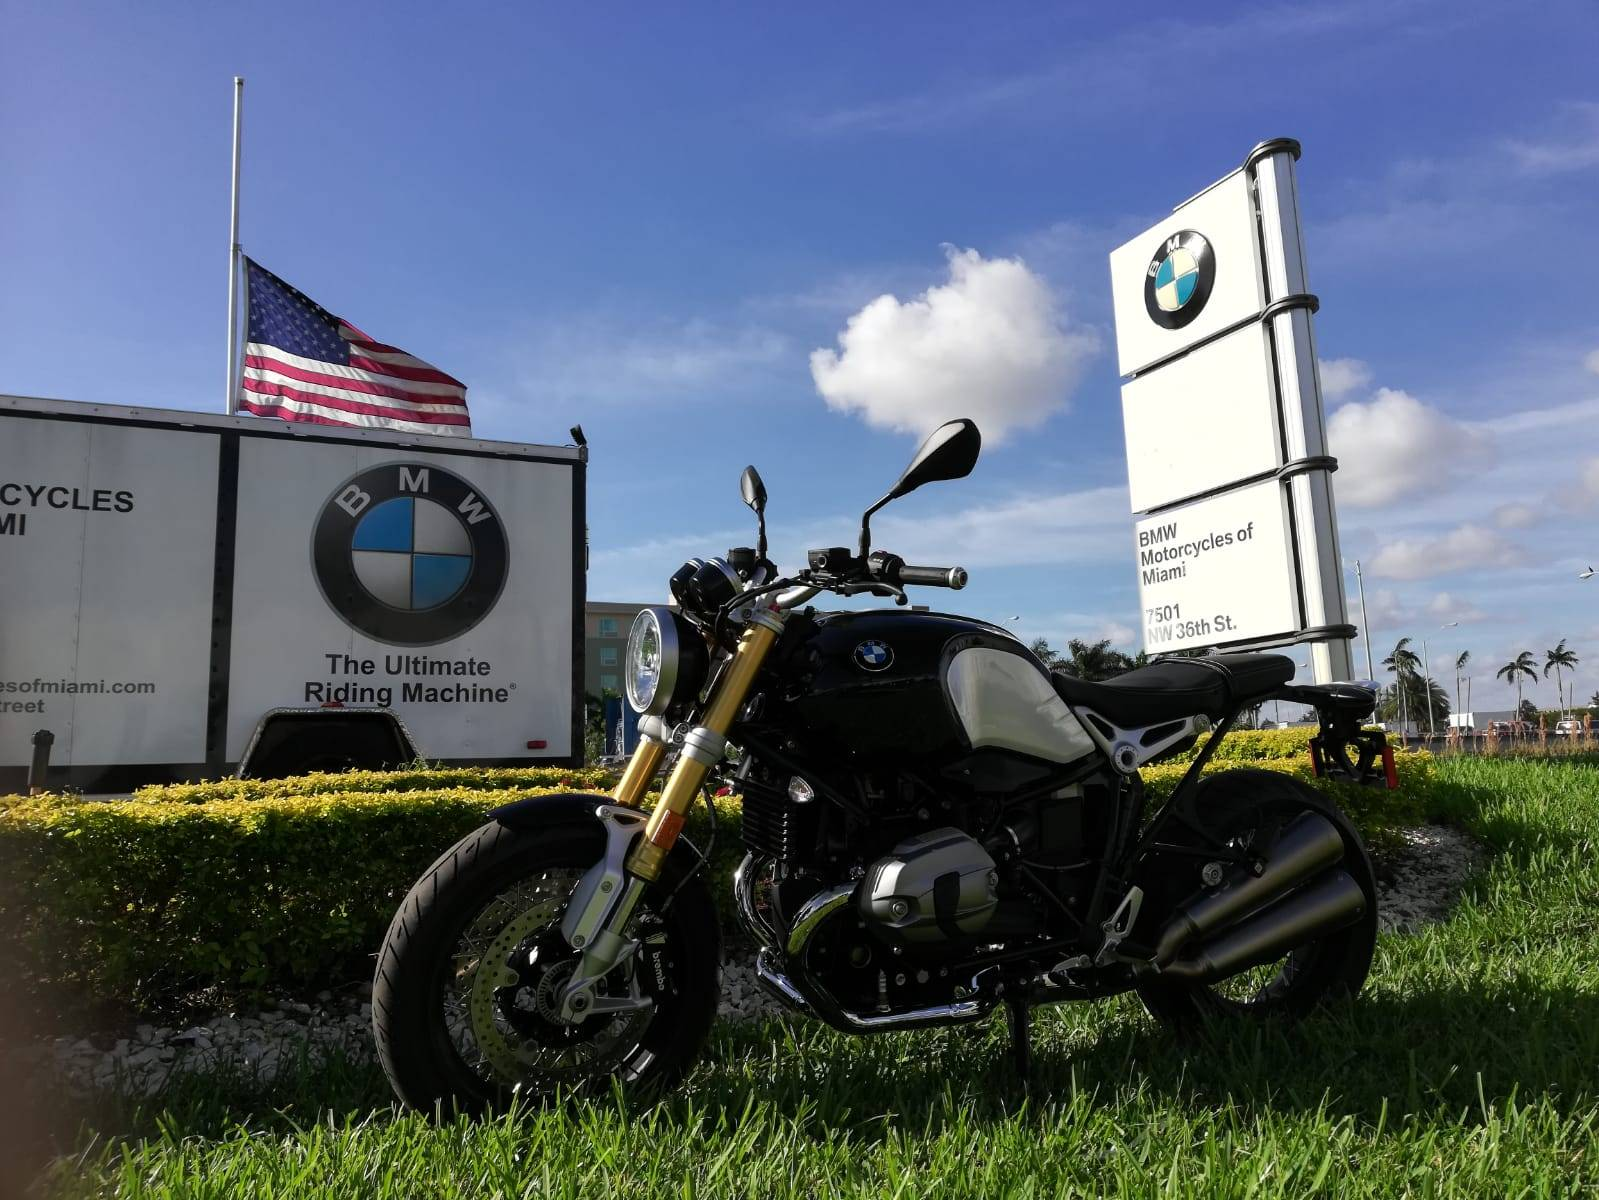 New 2019 BMW R NineT for sale, BMW for sale, BMW Motorcycle Café Racer, new BMW Caffe, Cafe Racer, BMW - Photo 4